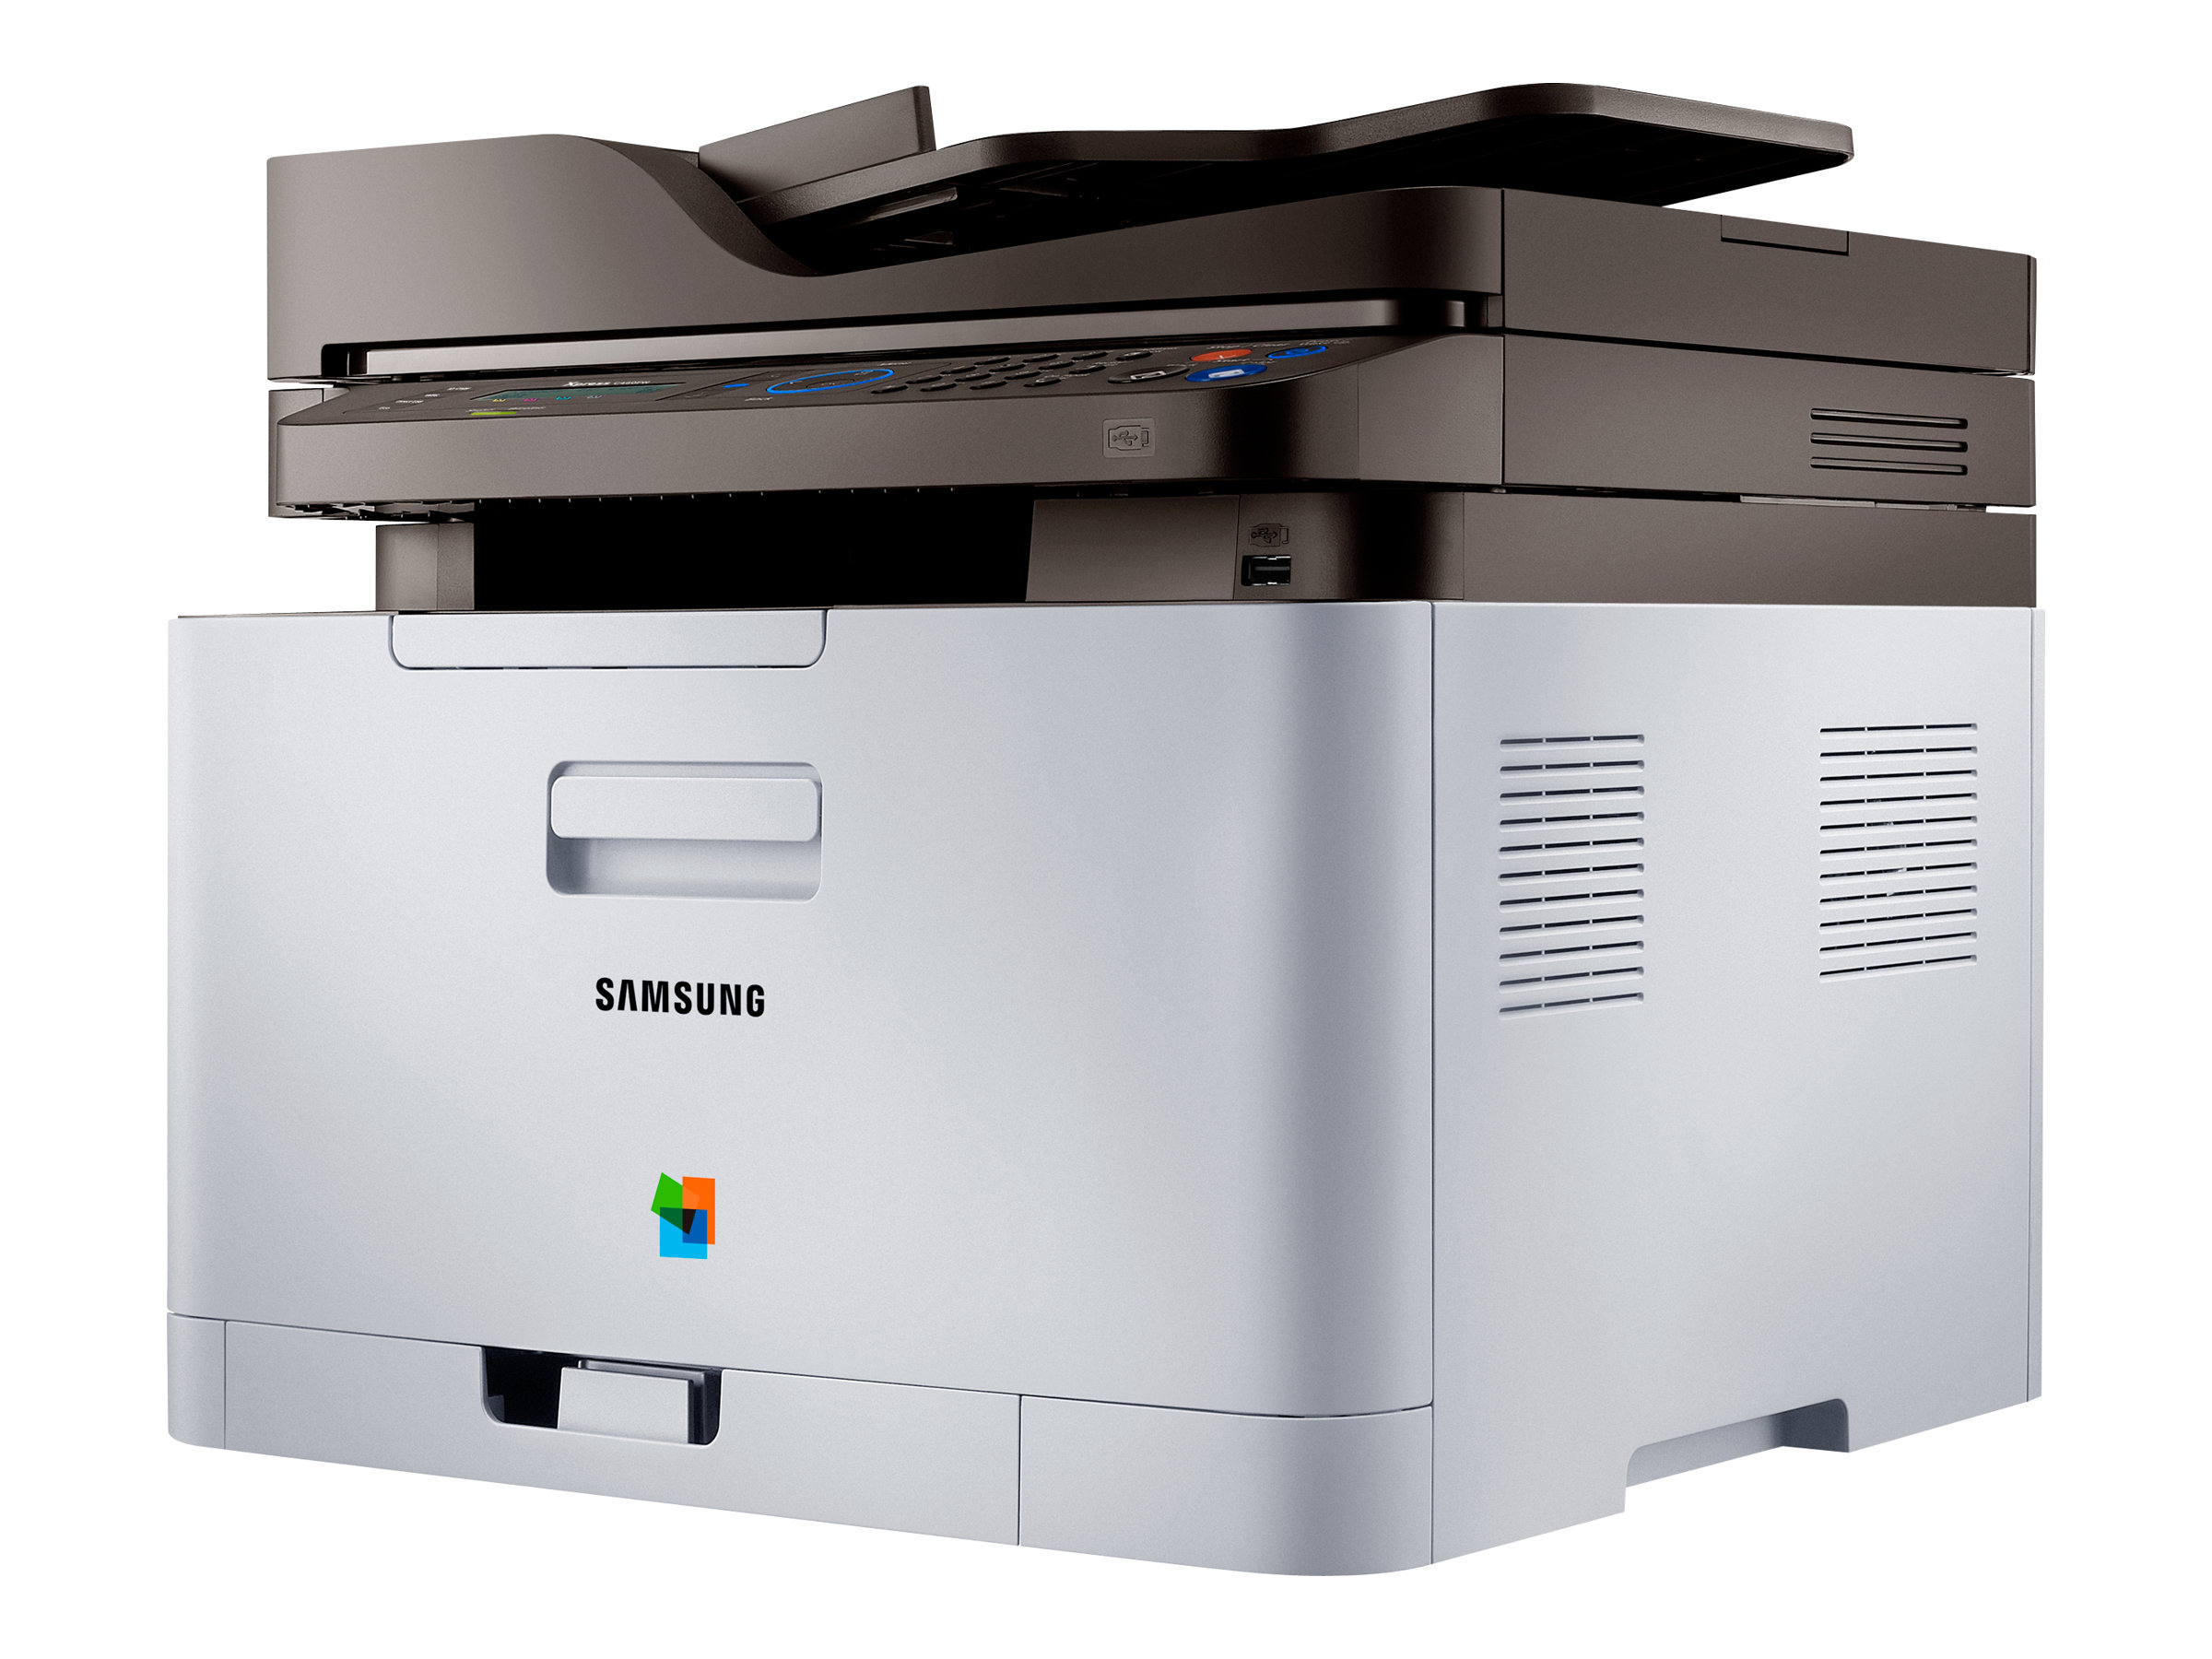 Samsung XPress C460FW Color Multifunction Laser